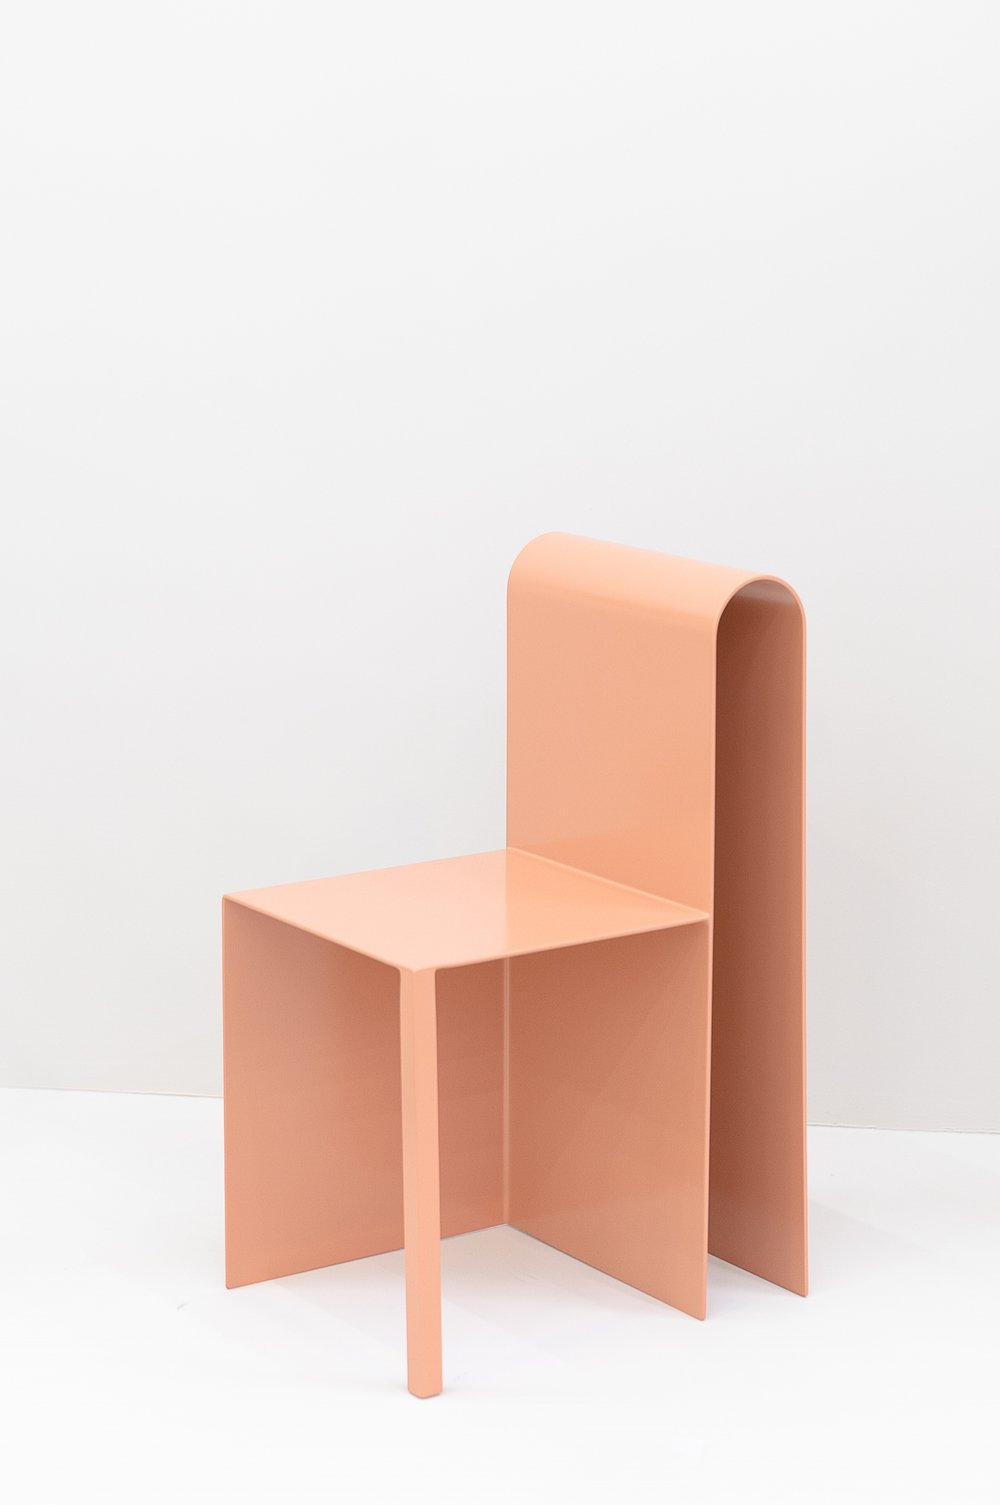 Silla Ch'up by Claudia Suárez Ahedo for AHS Studio